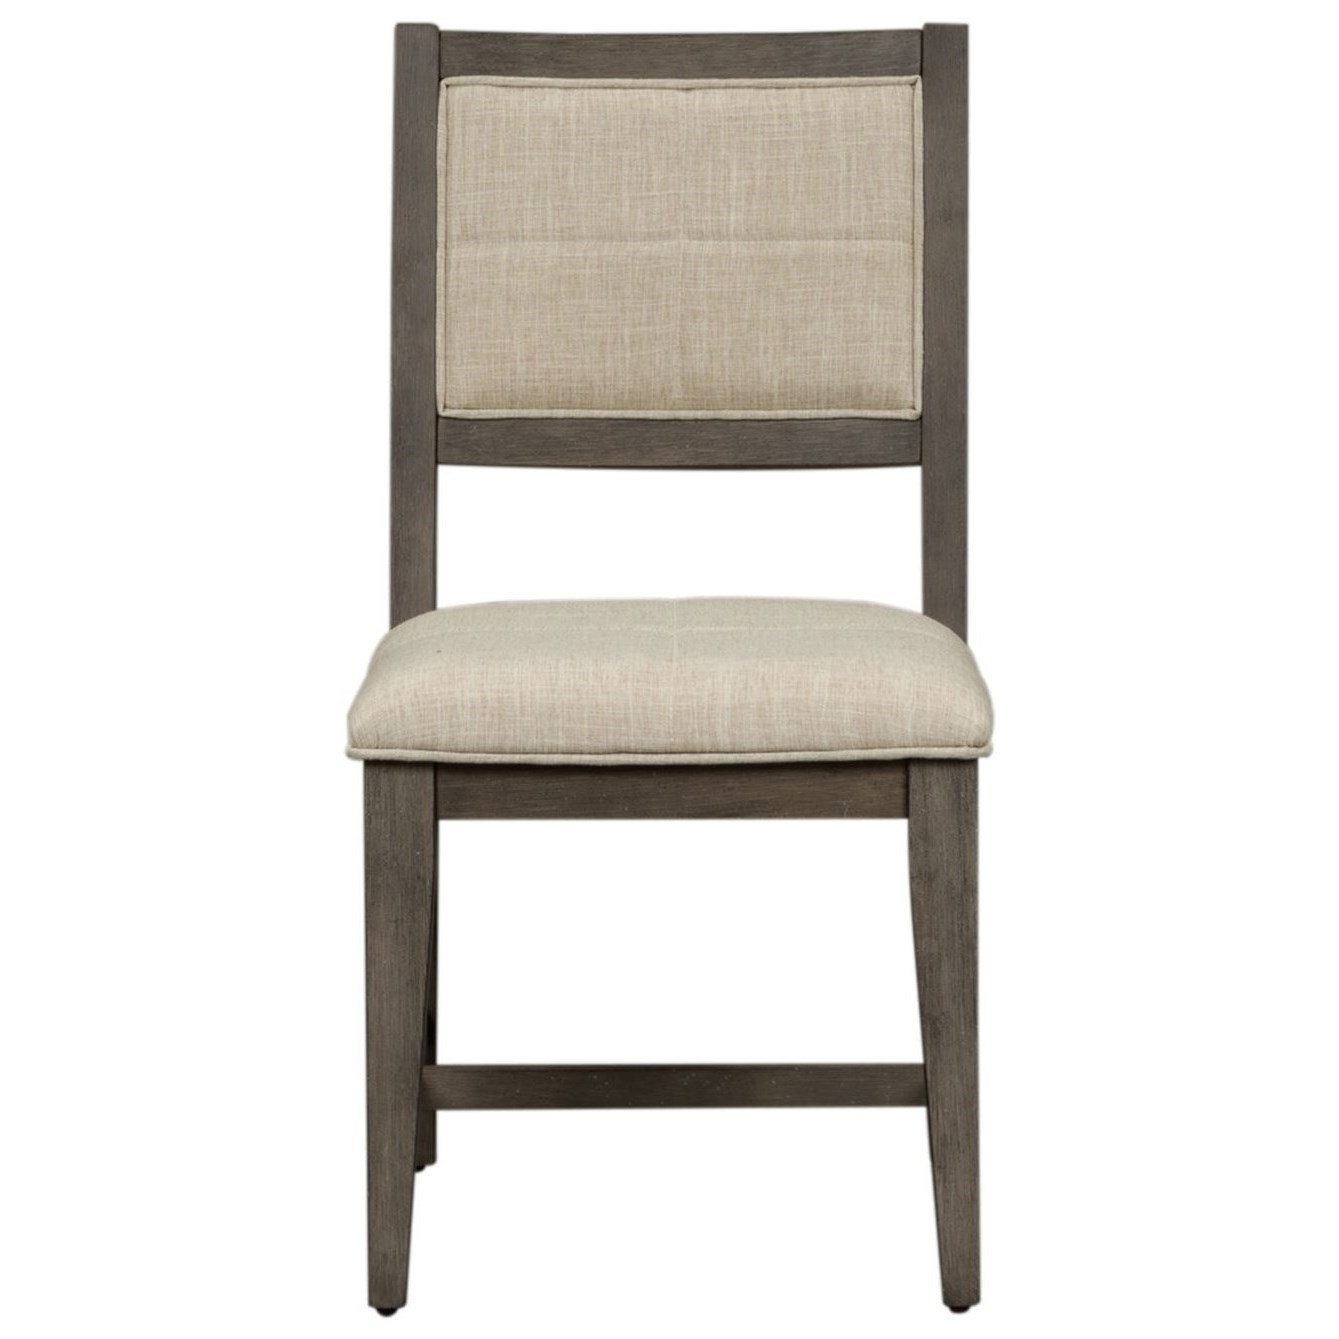 Crescent Creek Upholstered Side Chair (RTA) by Libby at Walker's Furniture